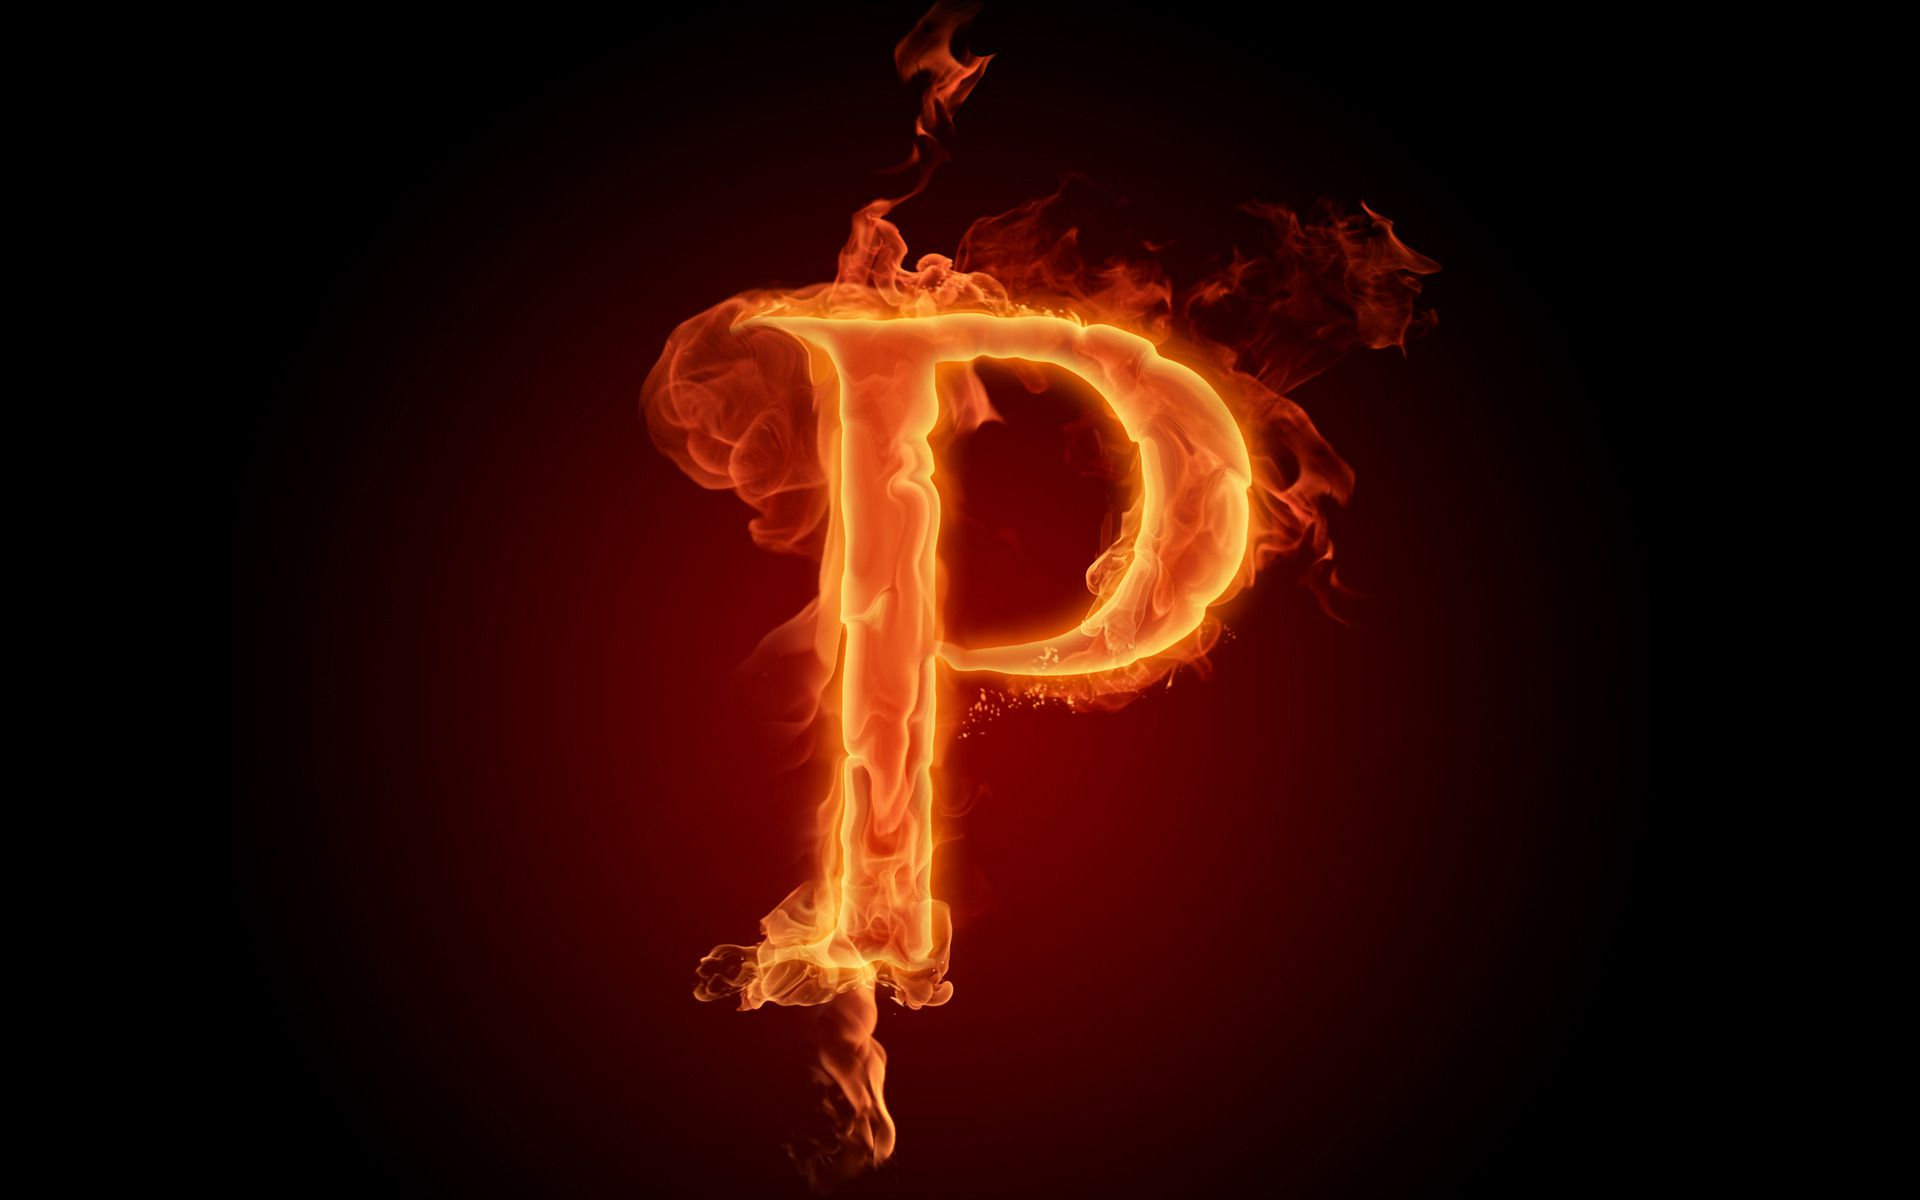 Hd Wallpaper Letter N: Flaming P Full HD Wallpaper And Background Image